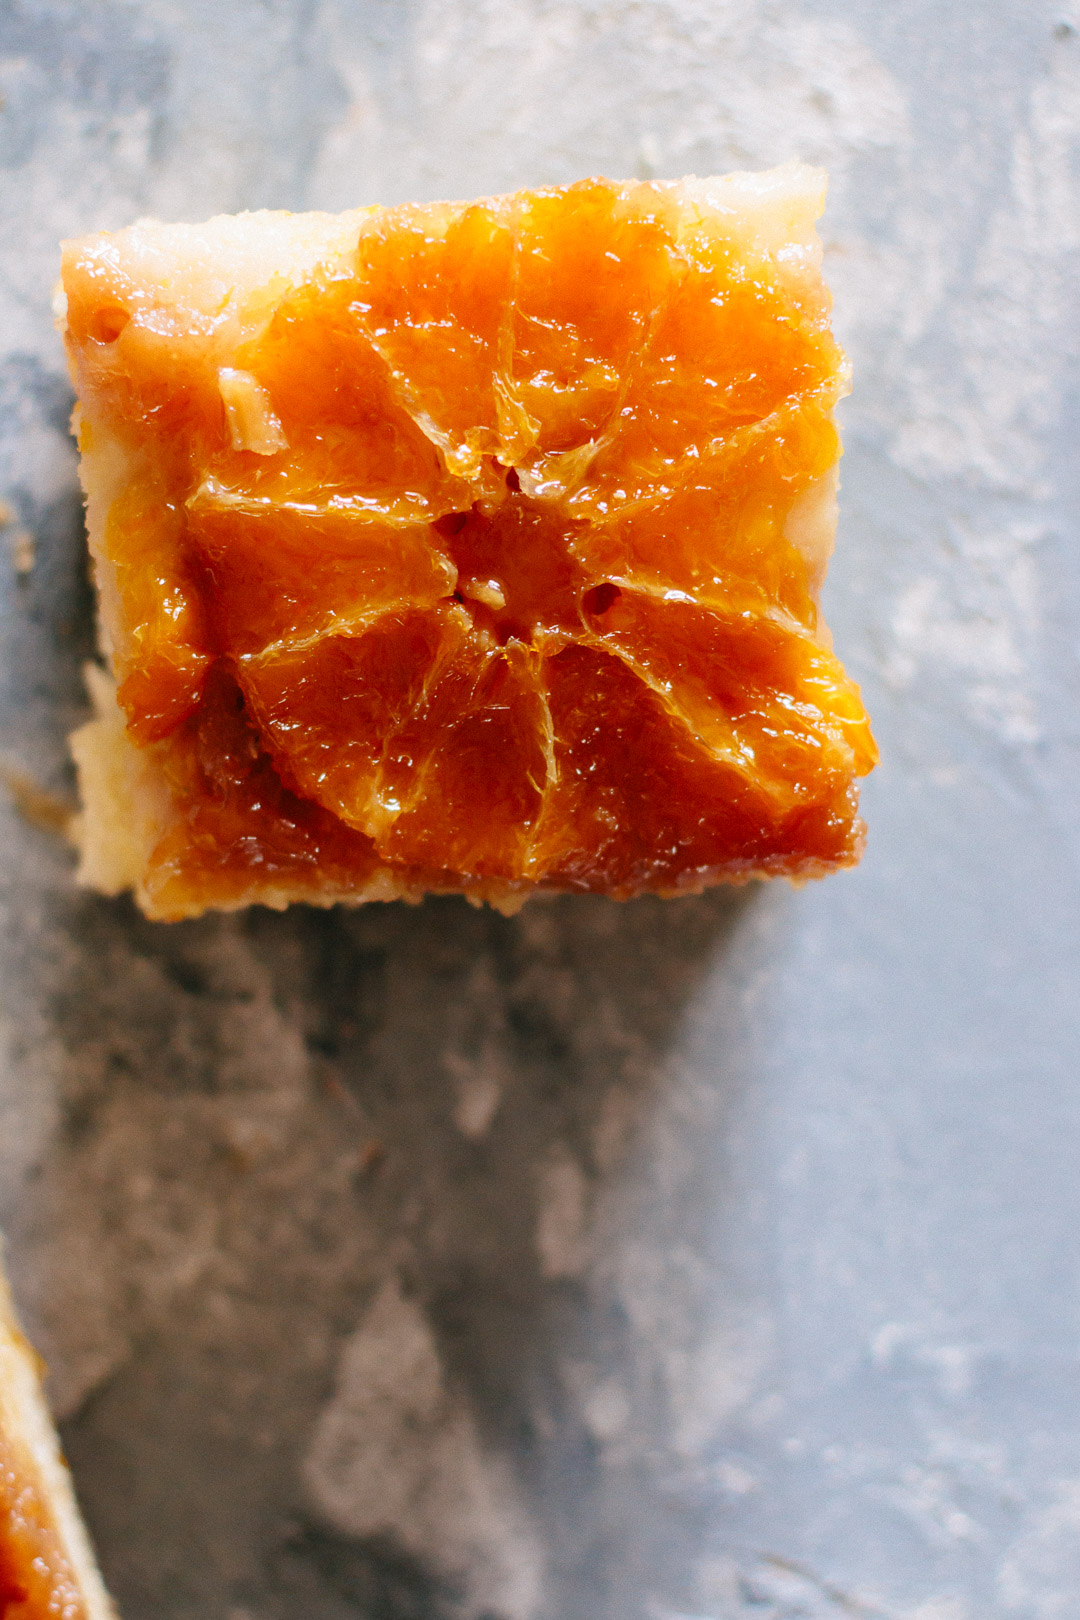 Overhead close up of a square slice of orange upside down cake.